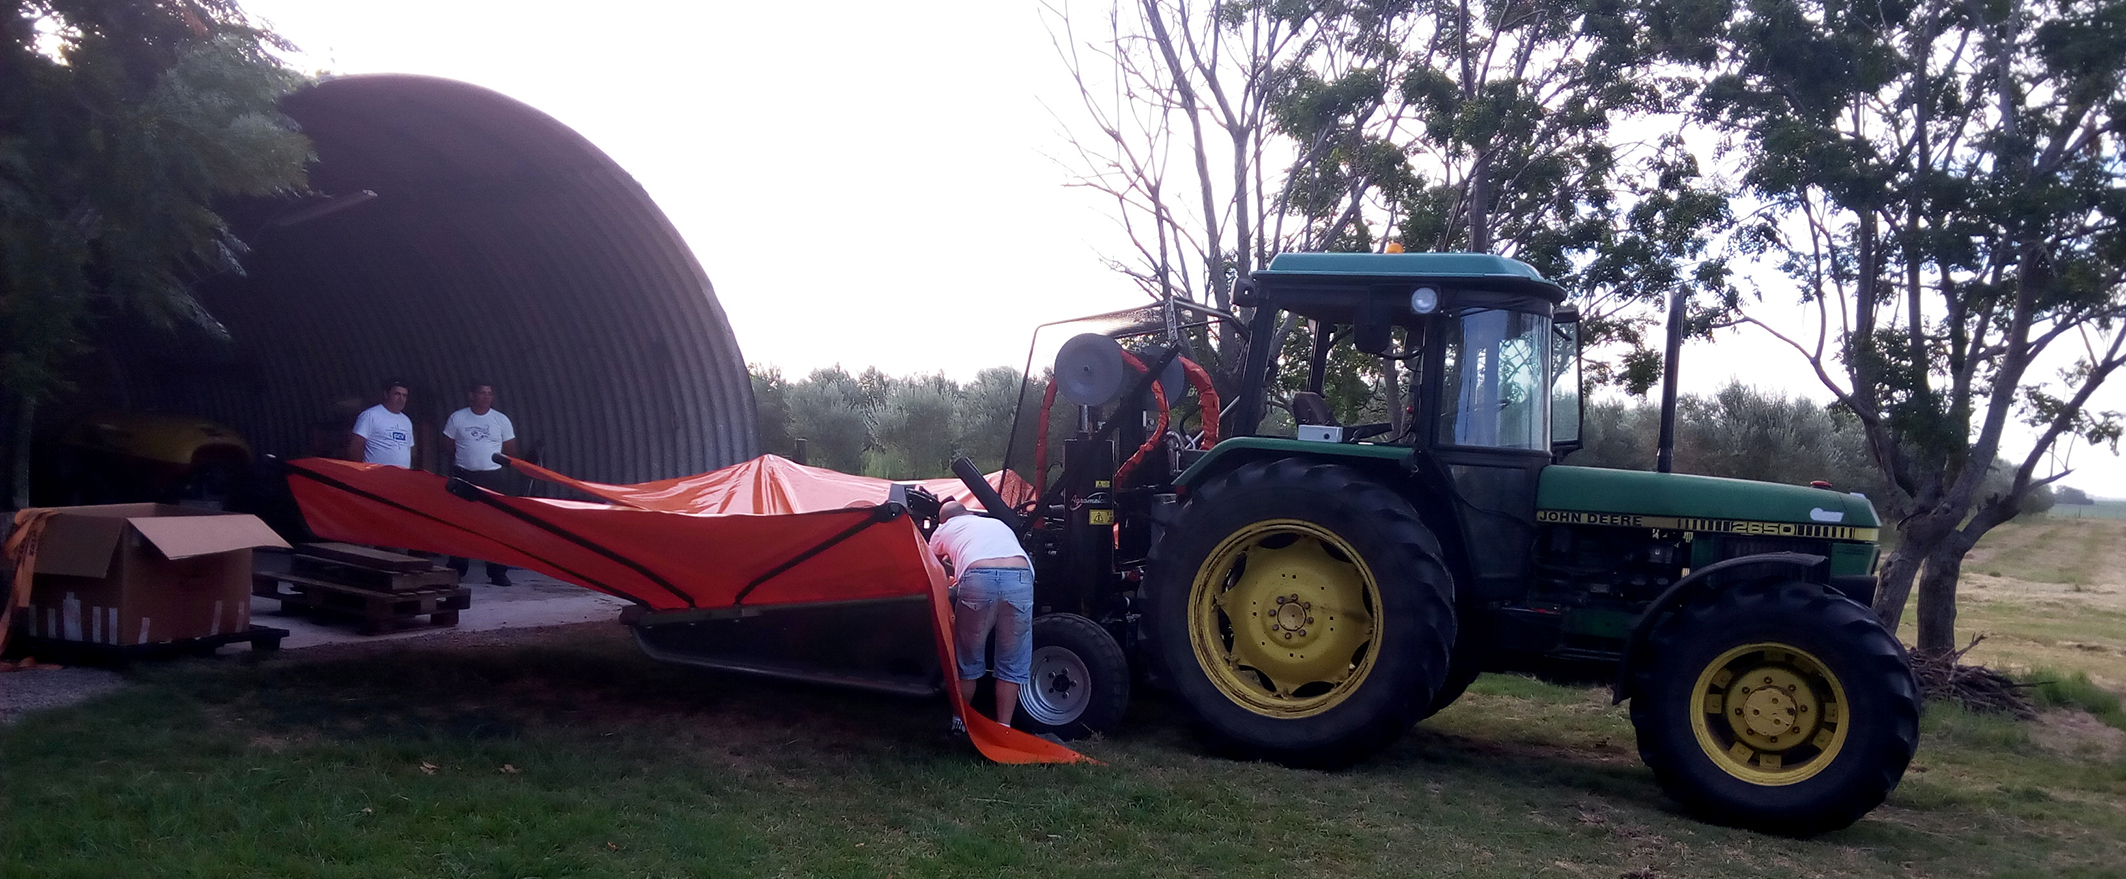 collecting_equipments_of_harvesting_in_uruguay